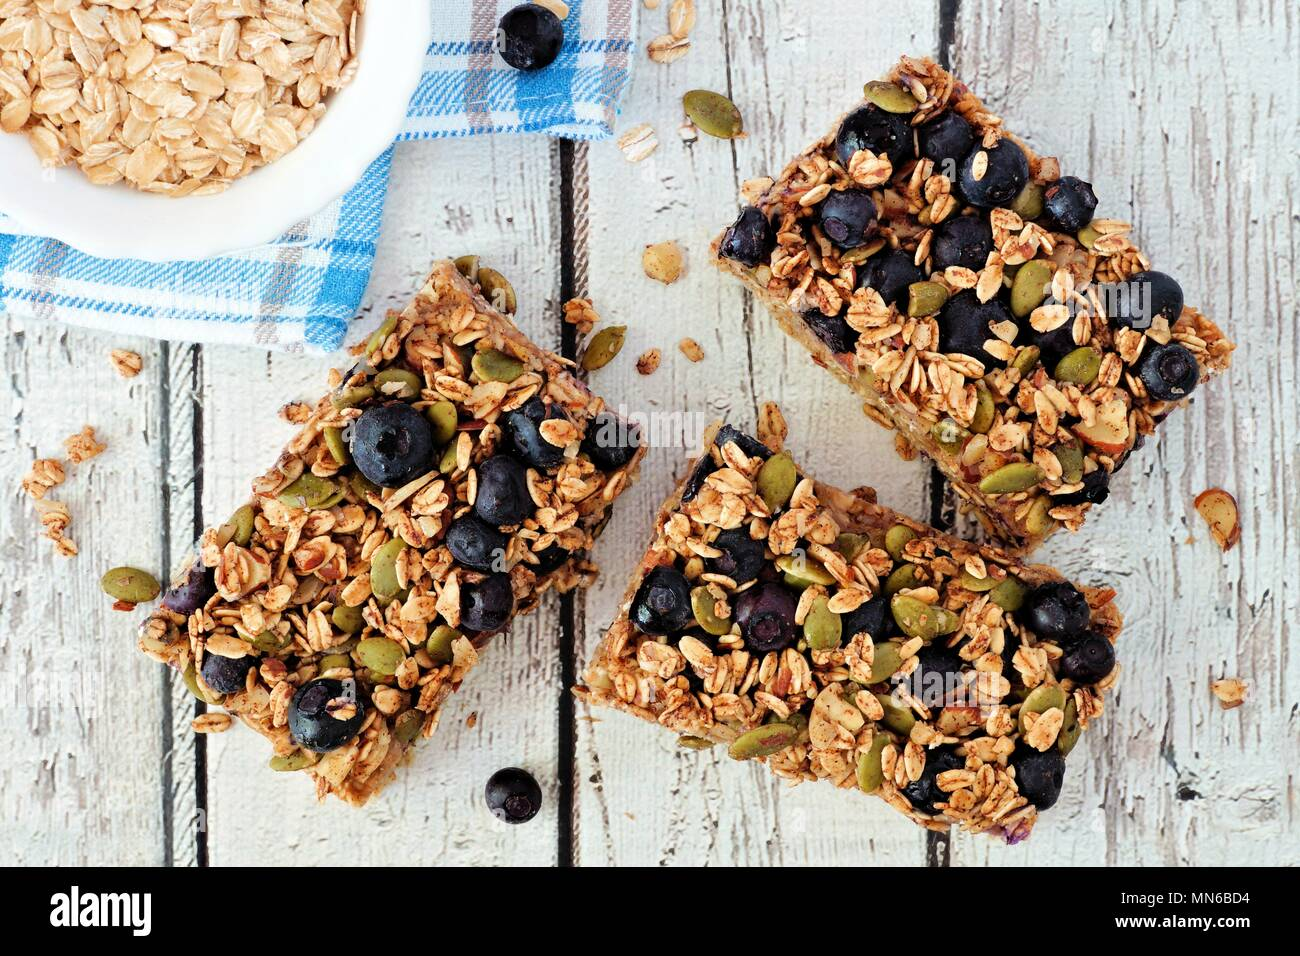 Superfood breakfast bars with oats and blueberries, overhead on white wood background - Stock Image